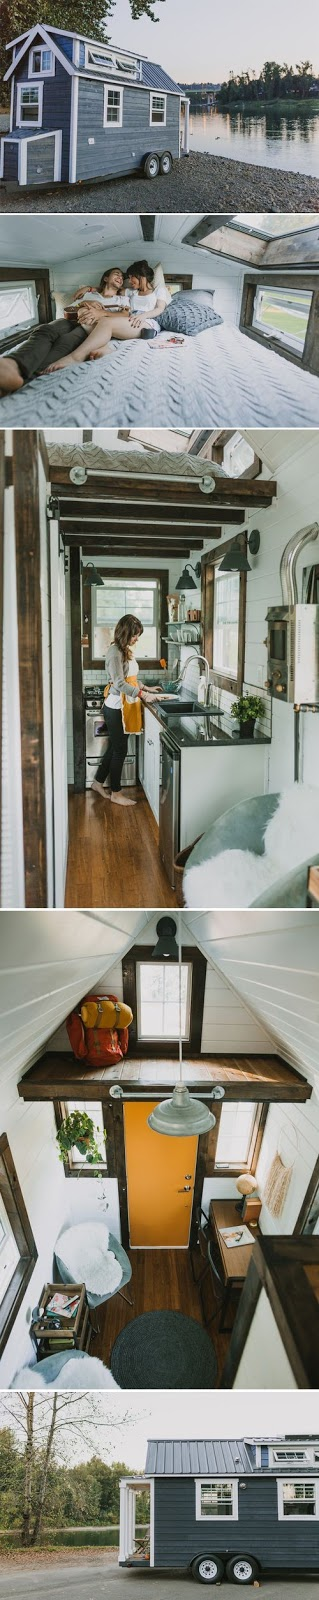 Tiny House on the move :: OrganizingMadeFun.com